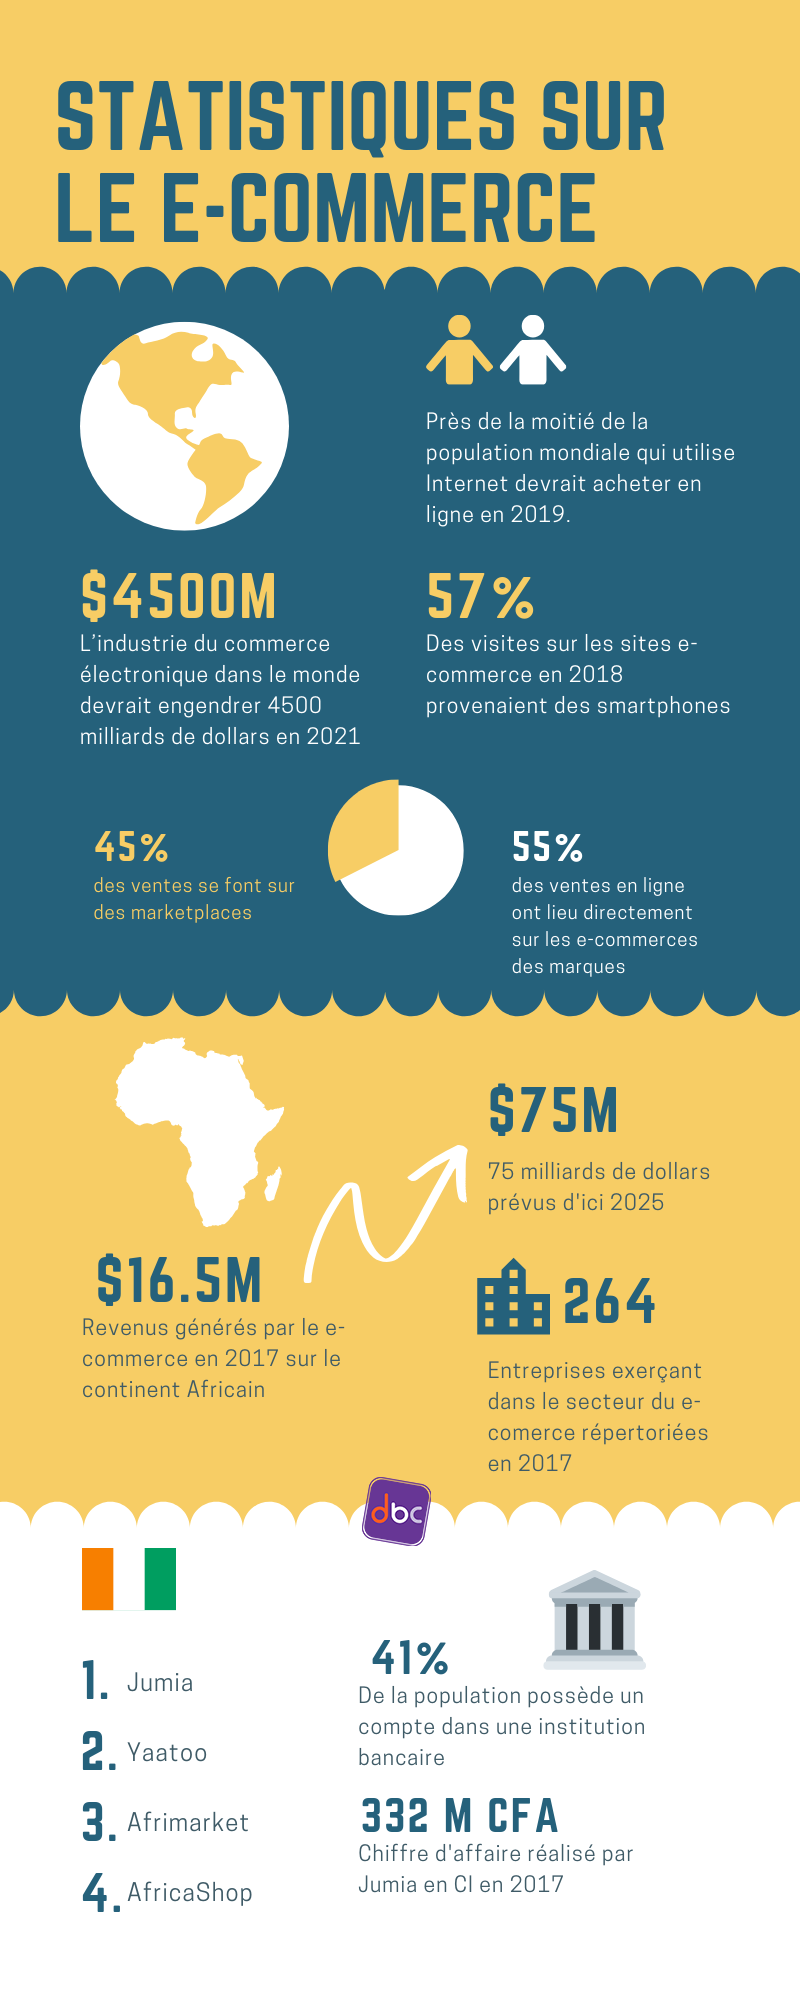 Infographie : statistiques e-commerce - DbC